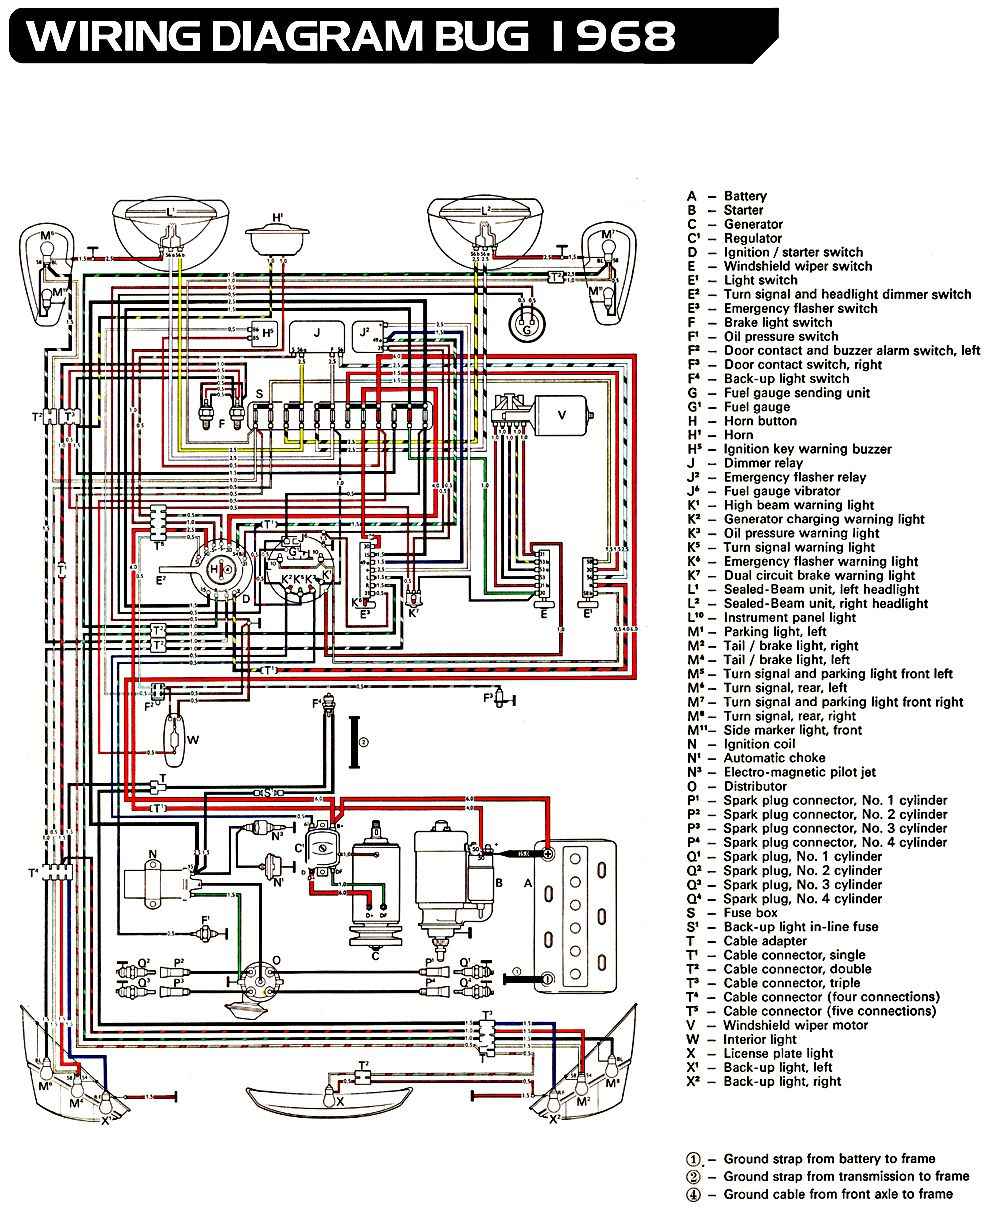 Vw Bug Ignition Wiring Diagram - 73 vw wiring diagram free ... | Volkswagen  new beetle, Volkswagen beetle, VolkswagenPinterest